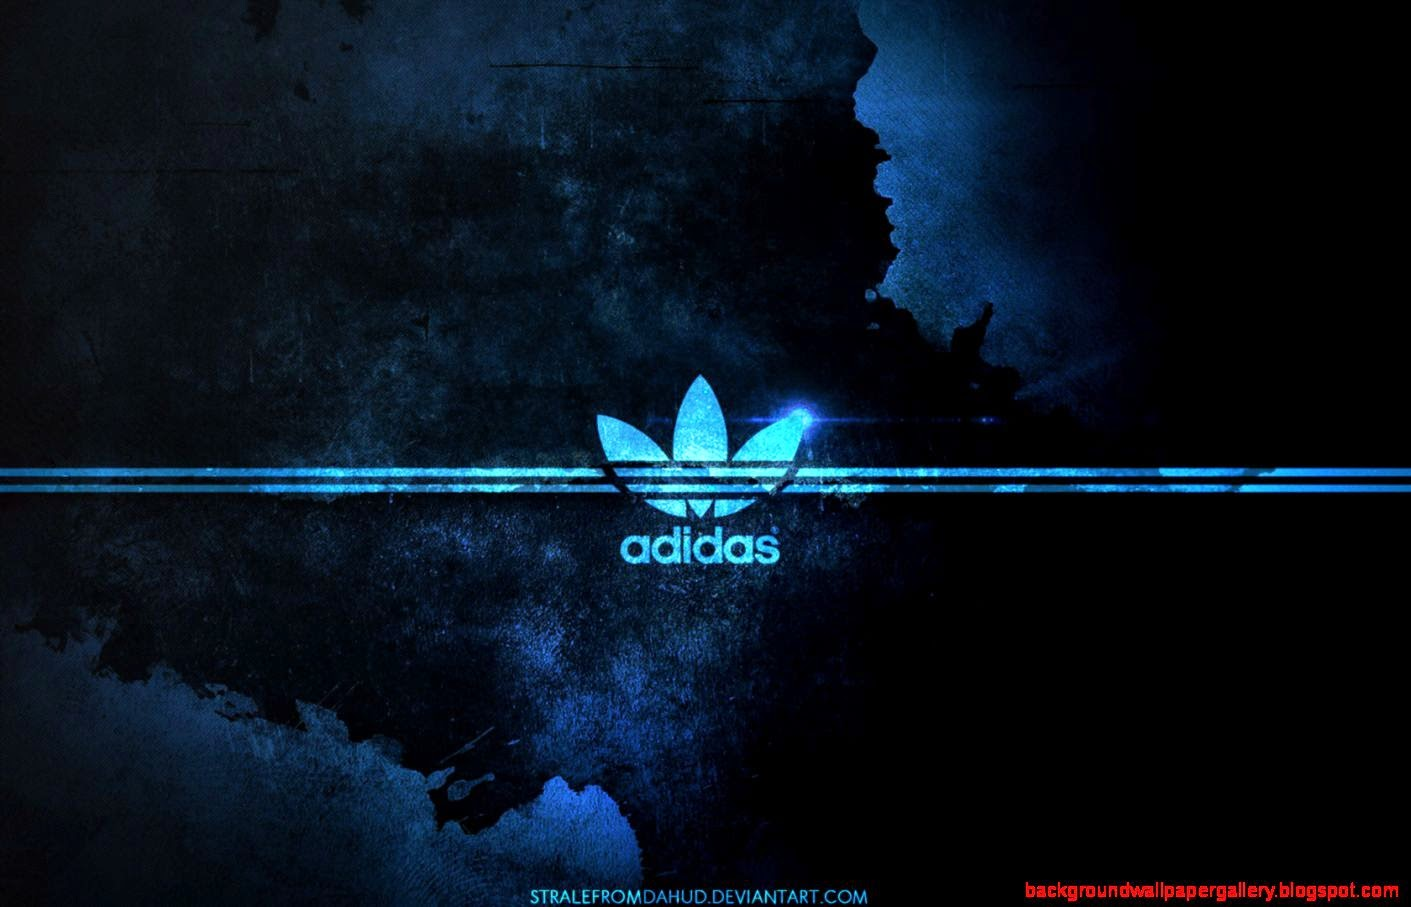 Adidas wallpaper blue